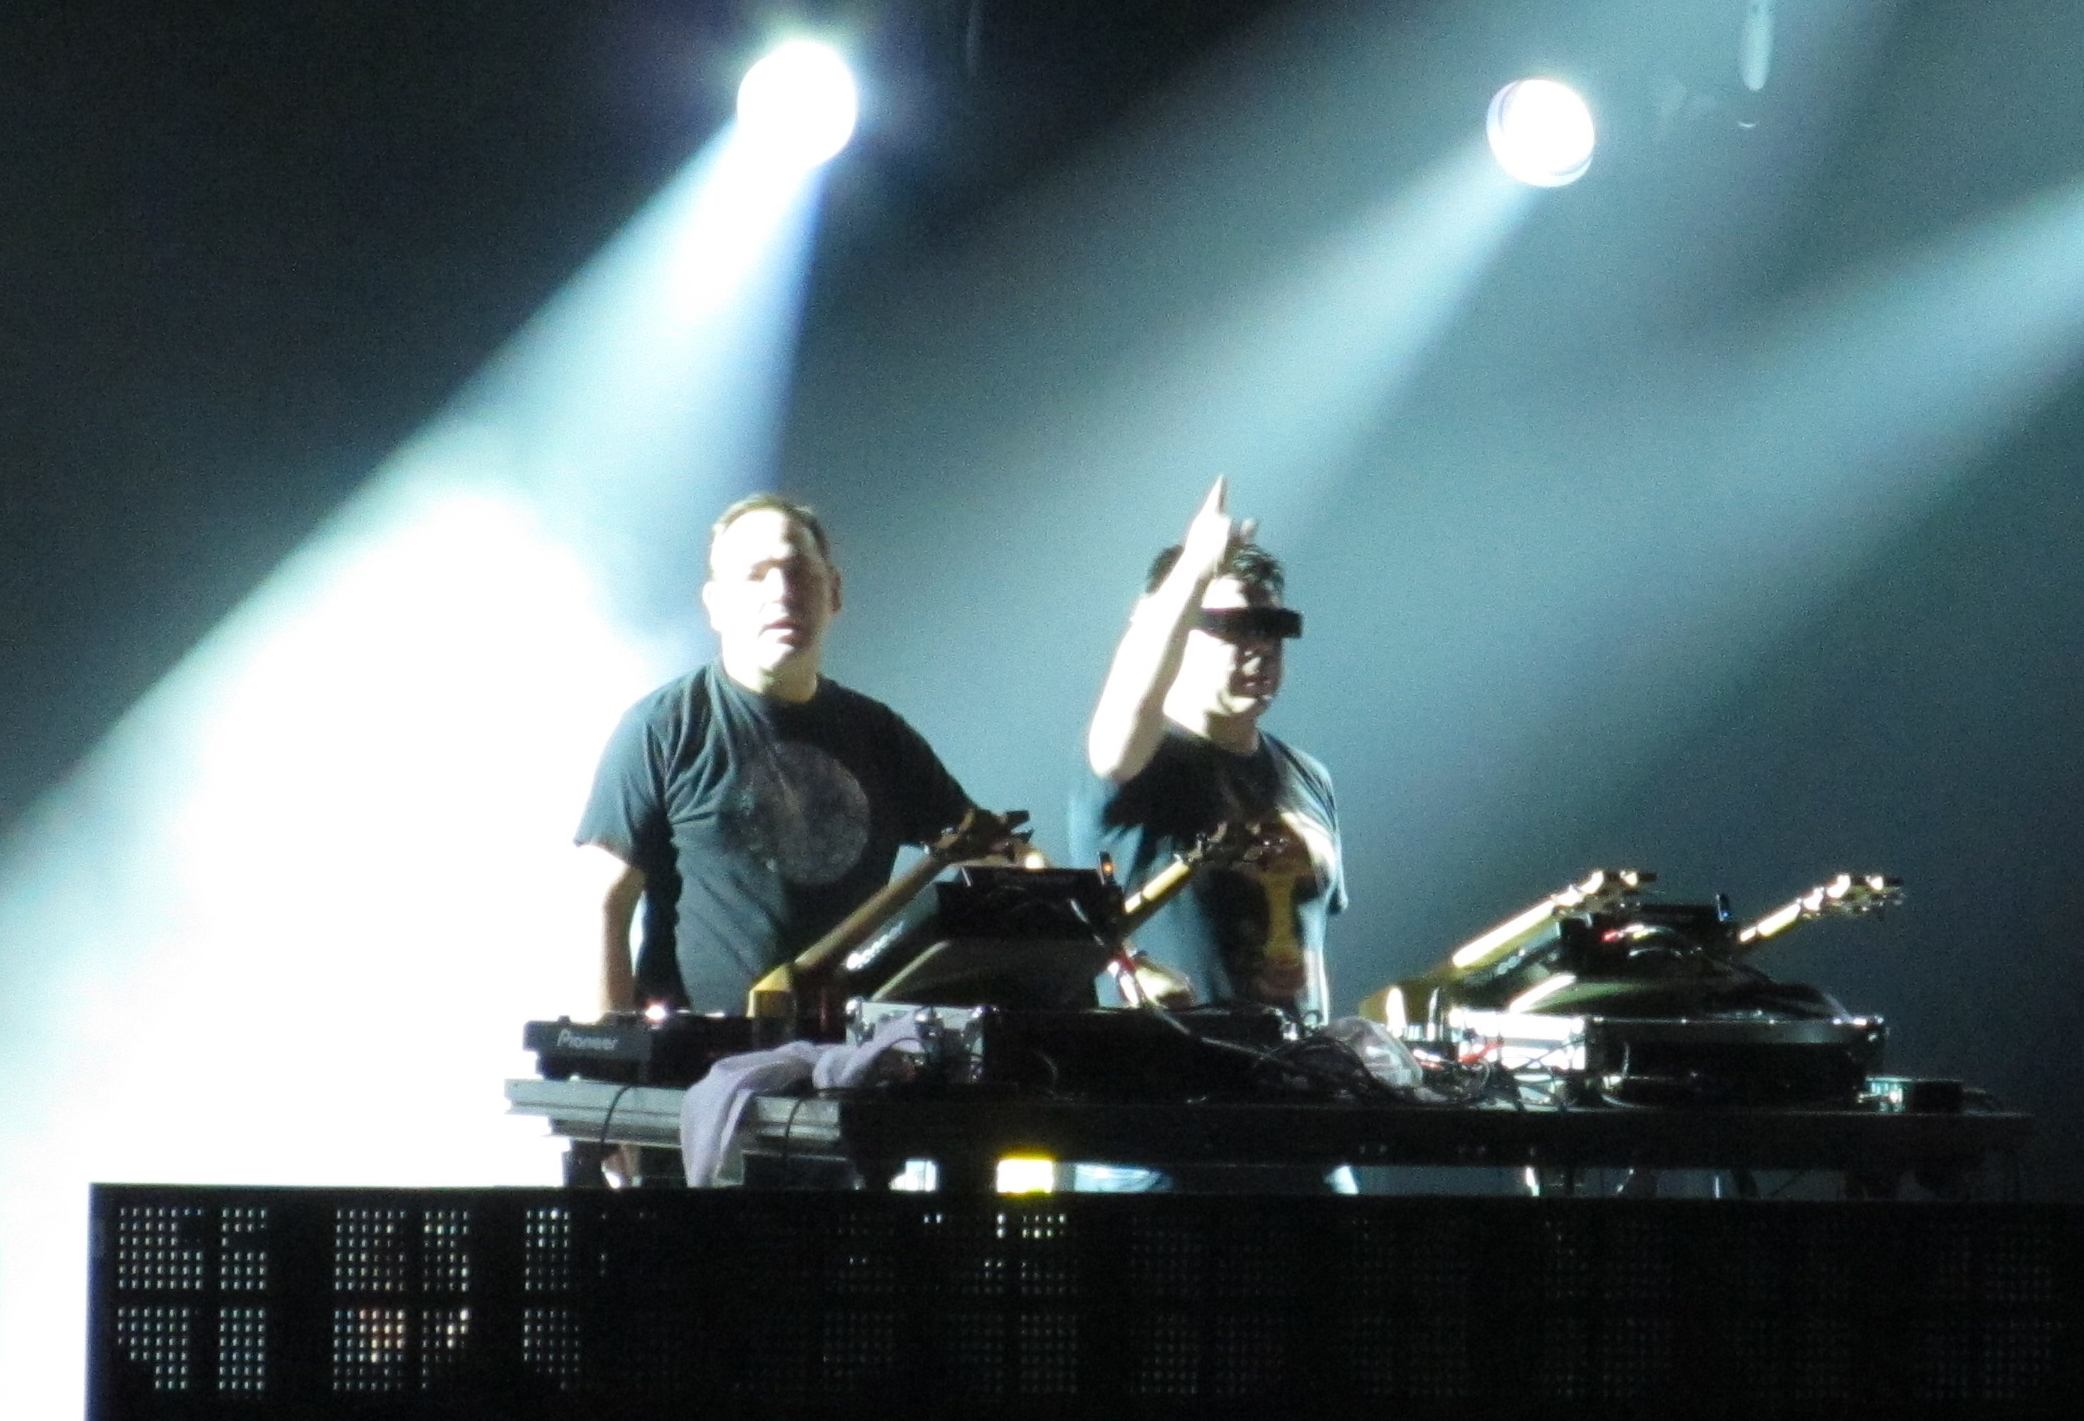 File:Lollapalooza Chile 2012 - The Crystal Method